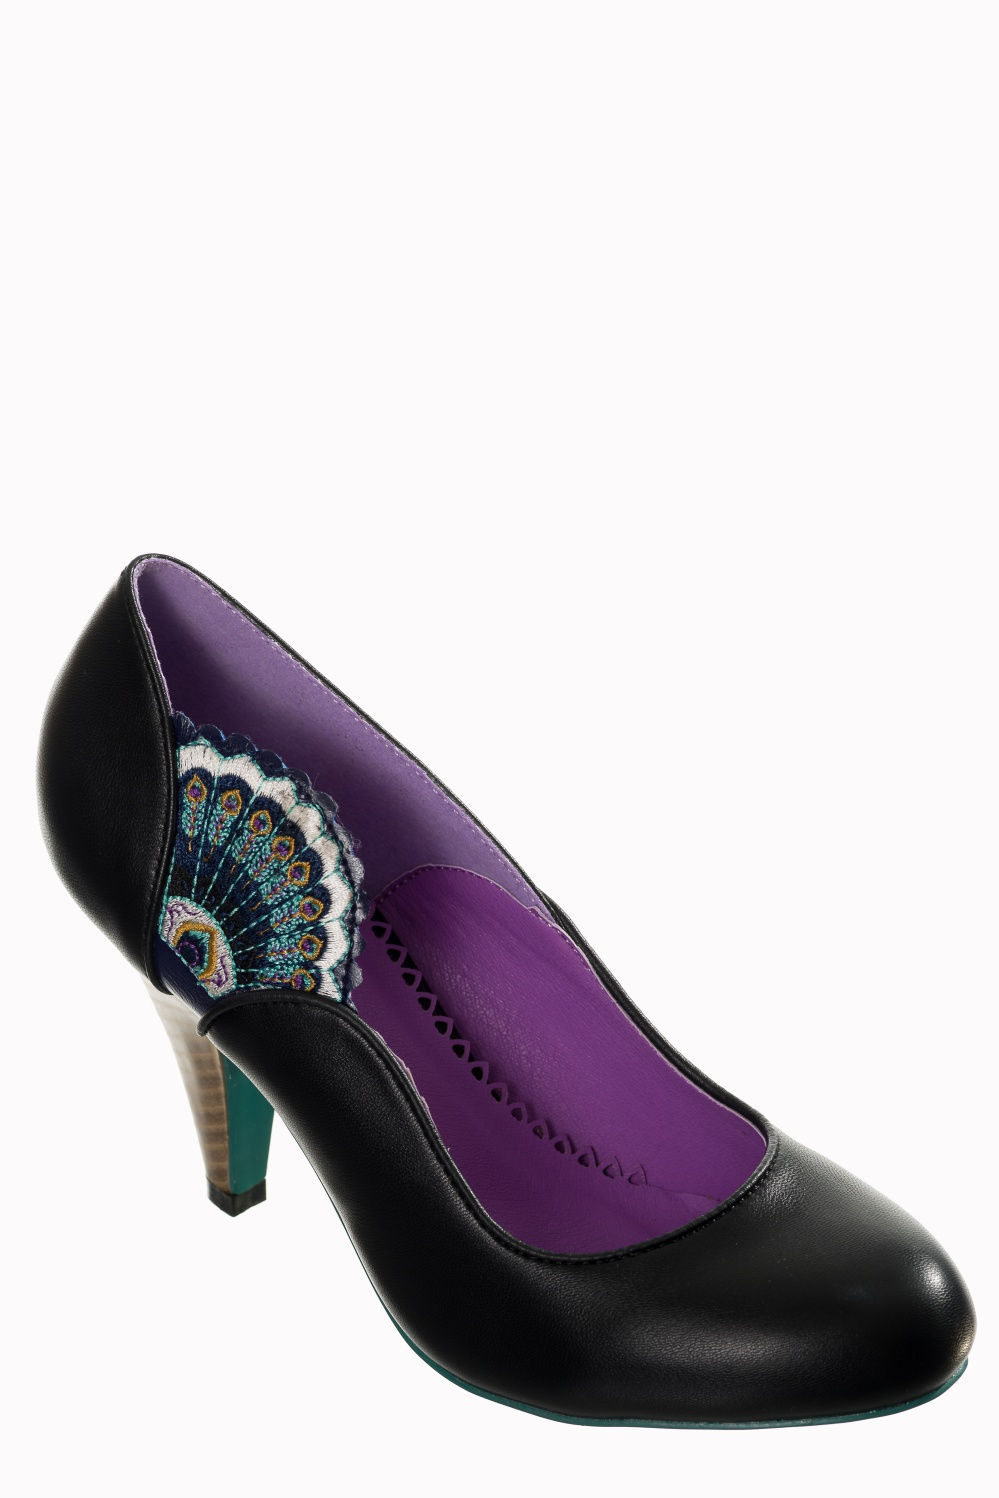 Dancing Days Sway 50s Black Peacock Shoes